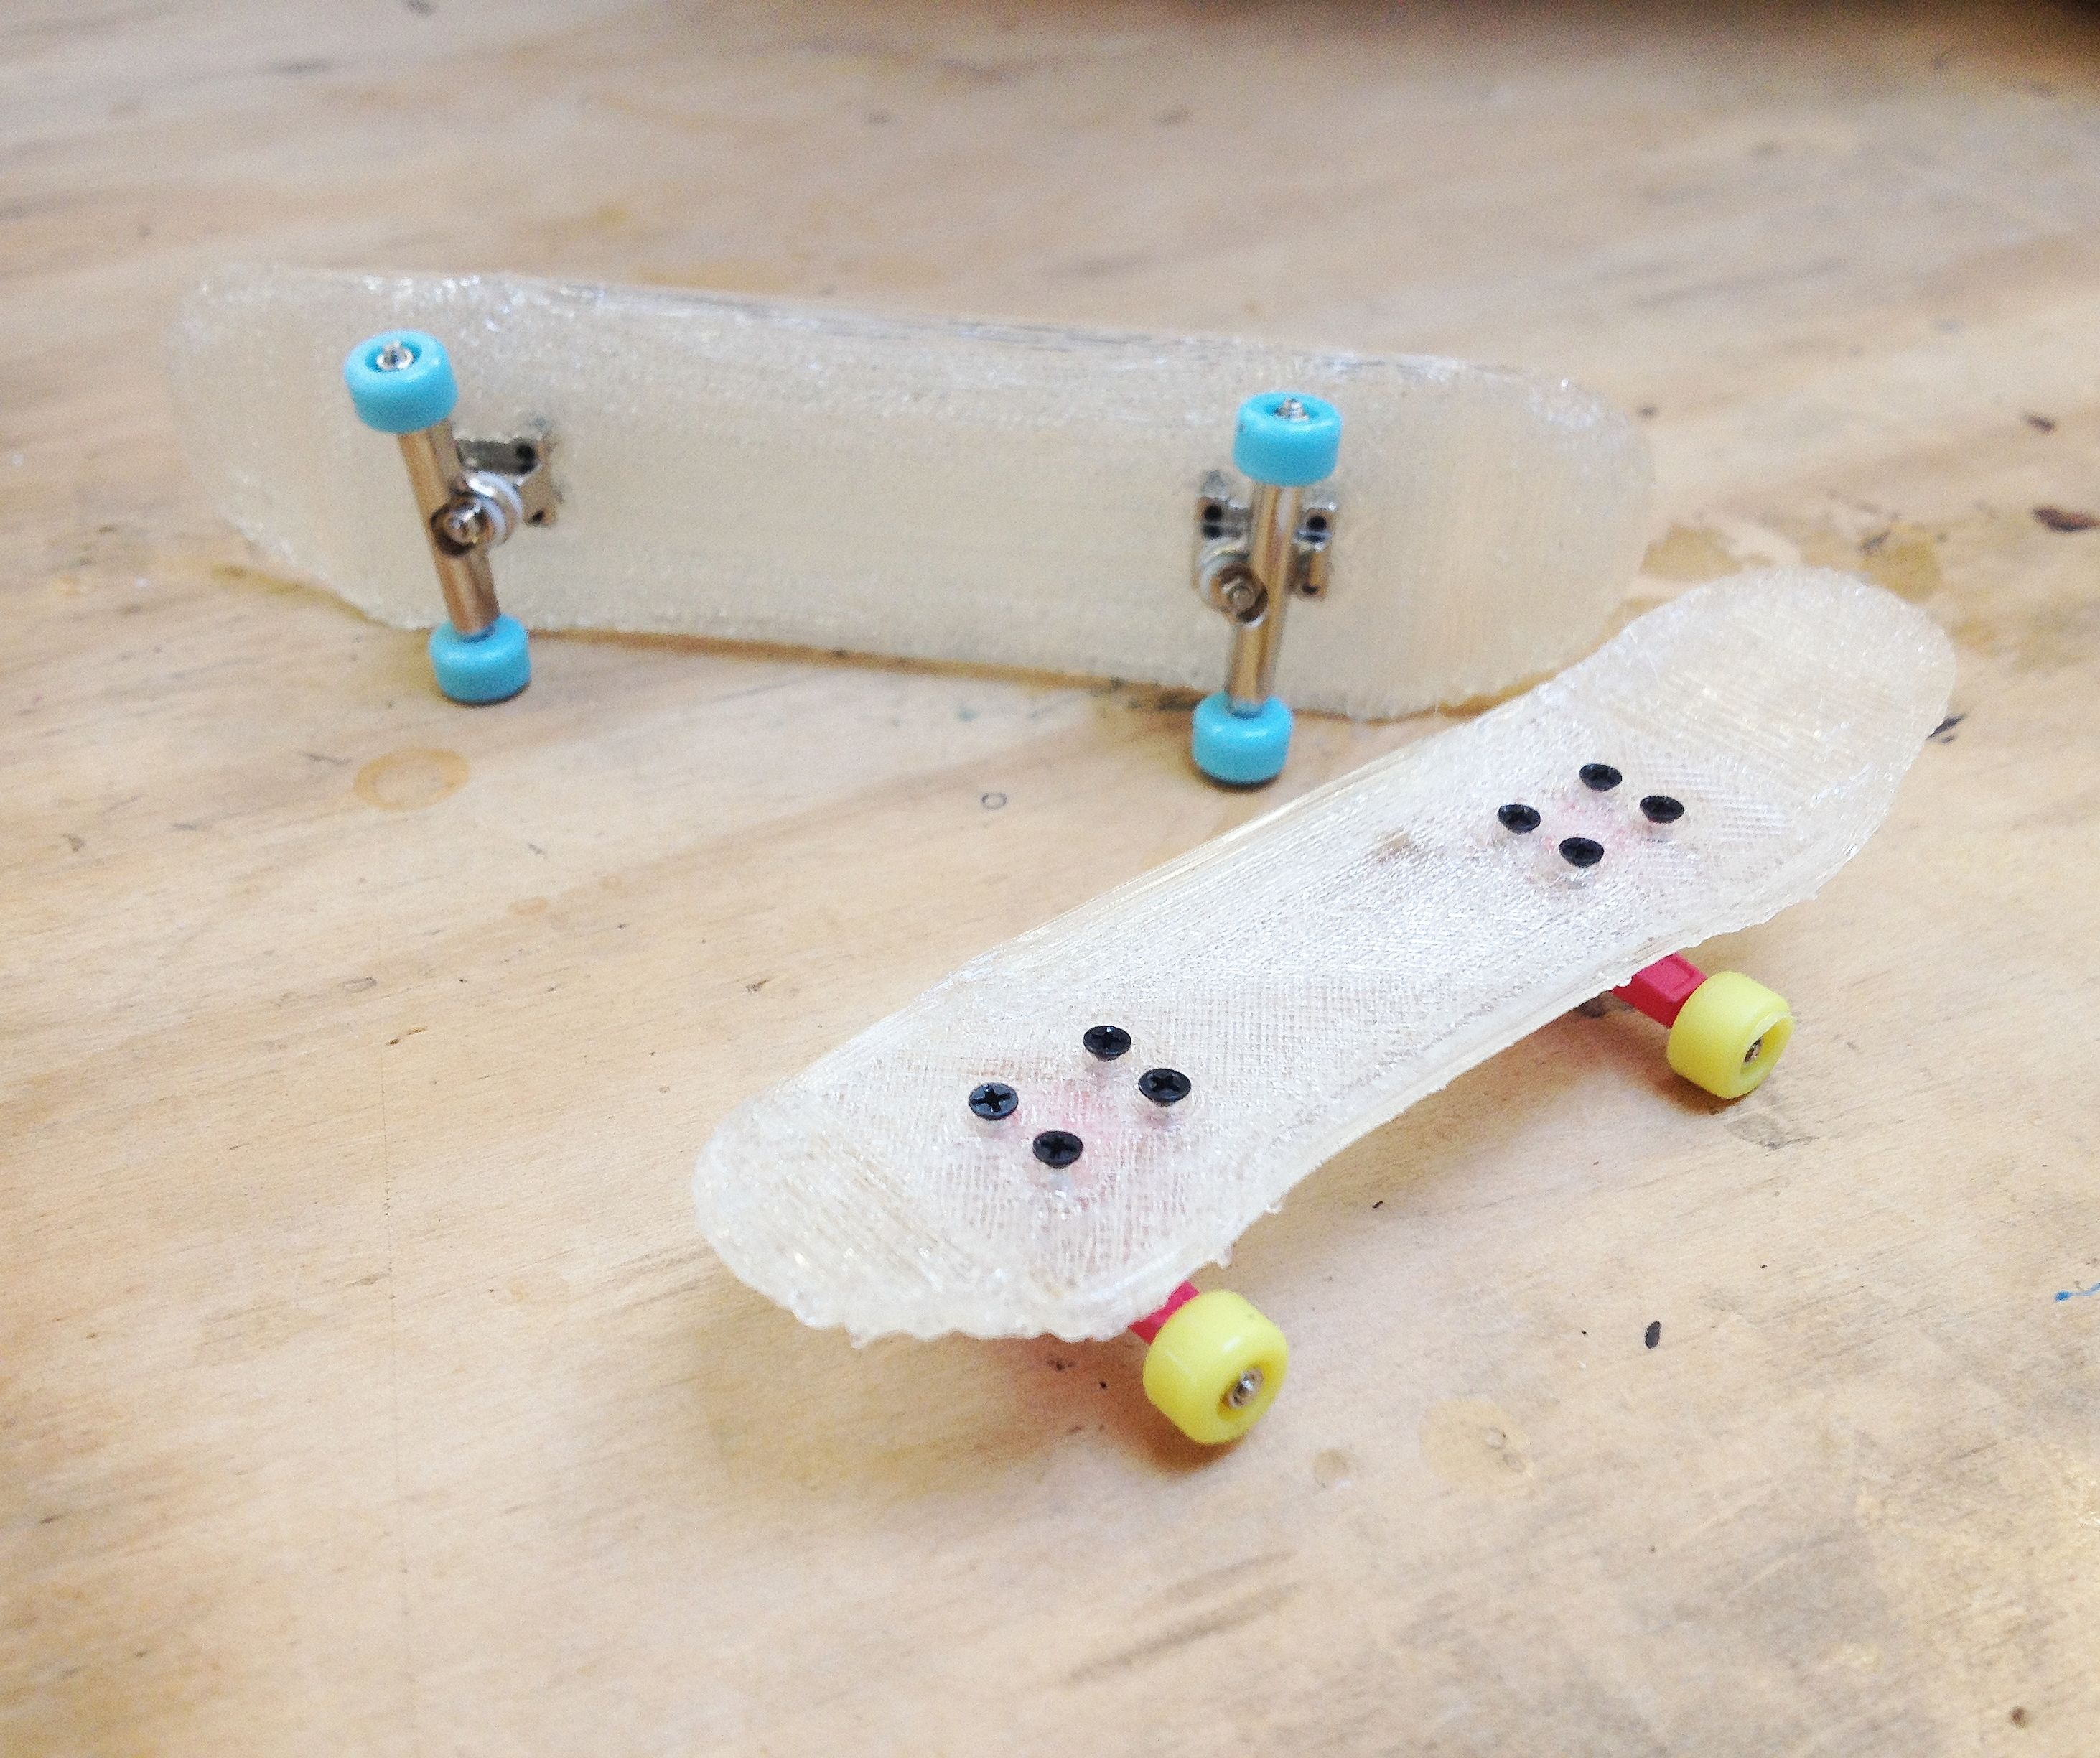 Custom 3D Printed Fingerboards!